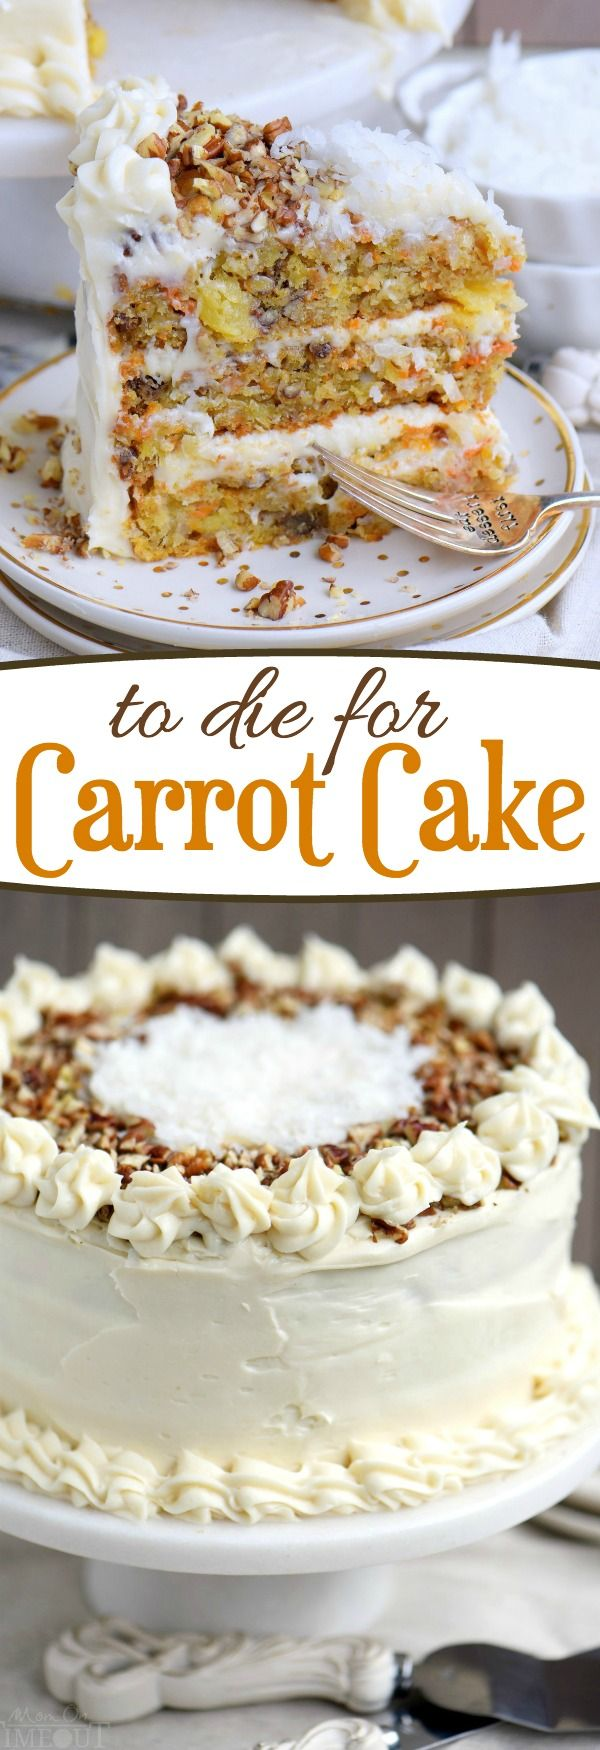 This To Die For Carrot Cake receives rave reviews for it's unbelievable moistness and flavor! Truly the BEST CARROT CAKE you'll ever try! So easy to make and as an added bonus, there's no oil or butter! I know this cake will quickly become a family favorite!